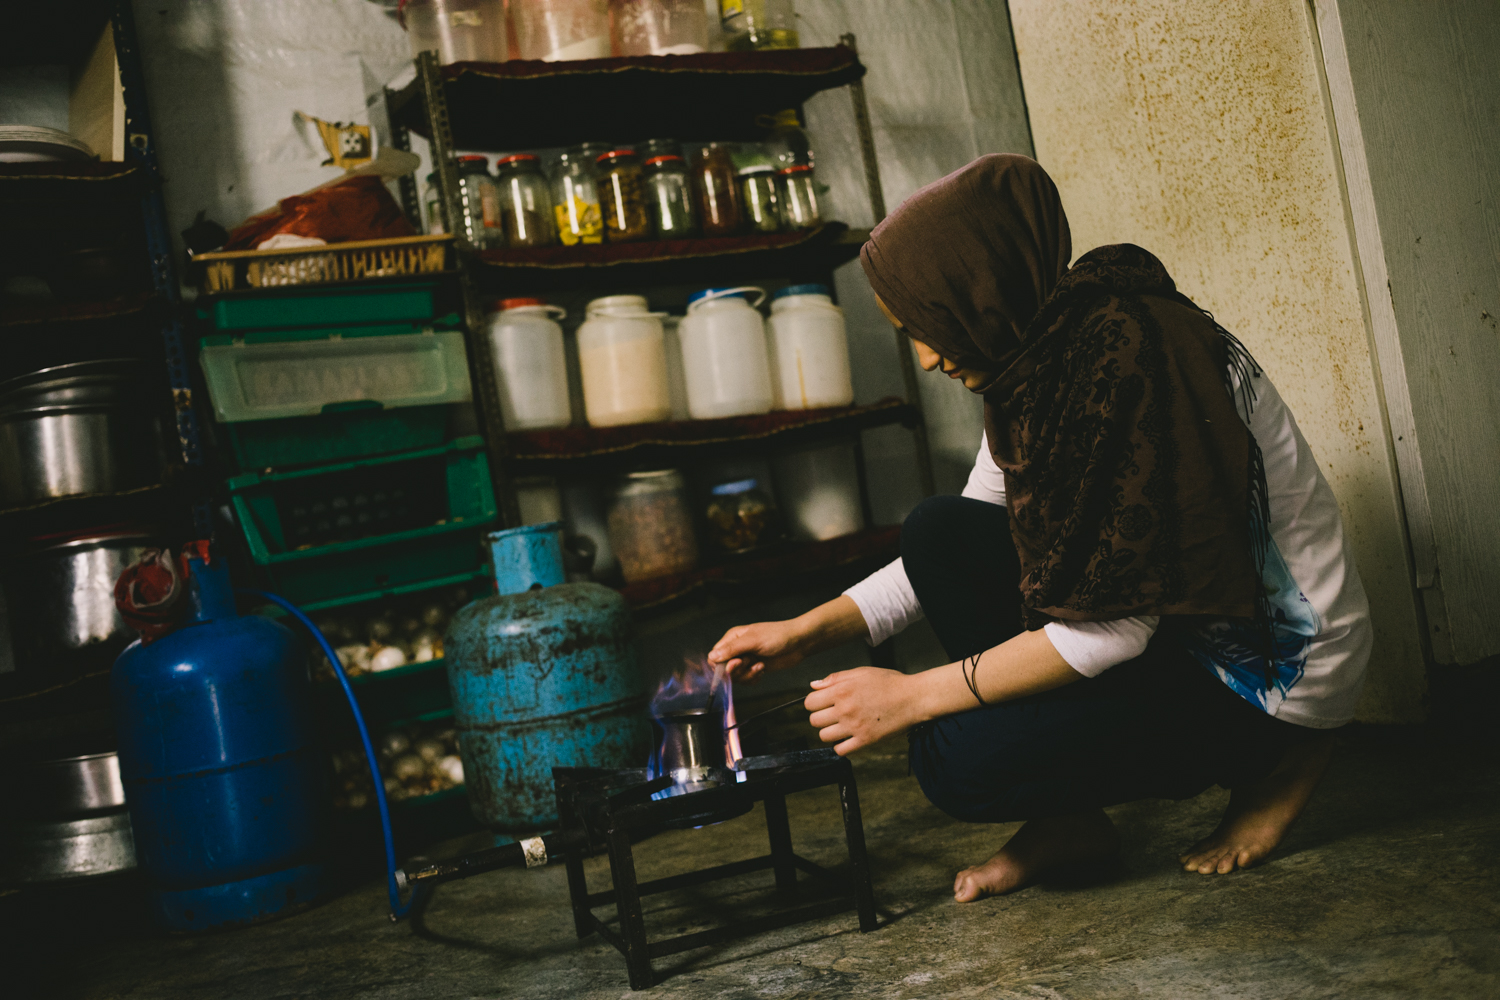 A teenage girl prepares coffee for her family.